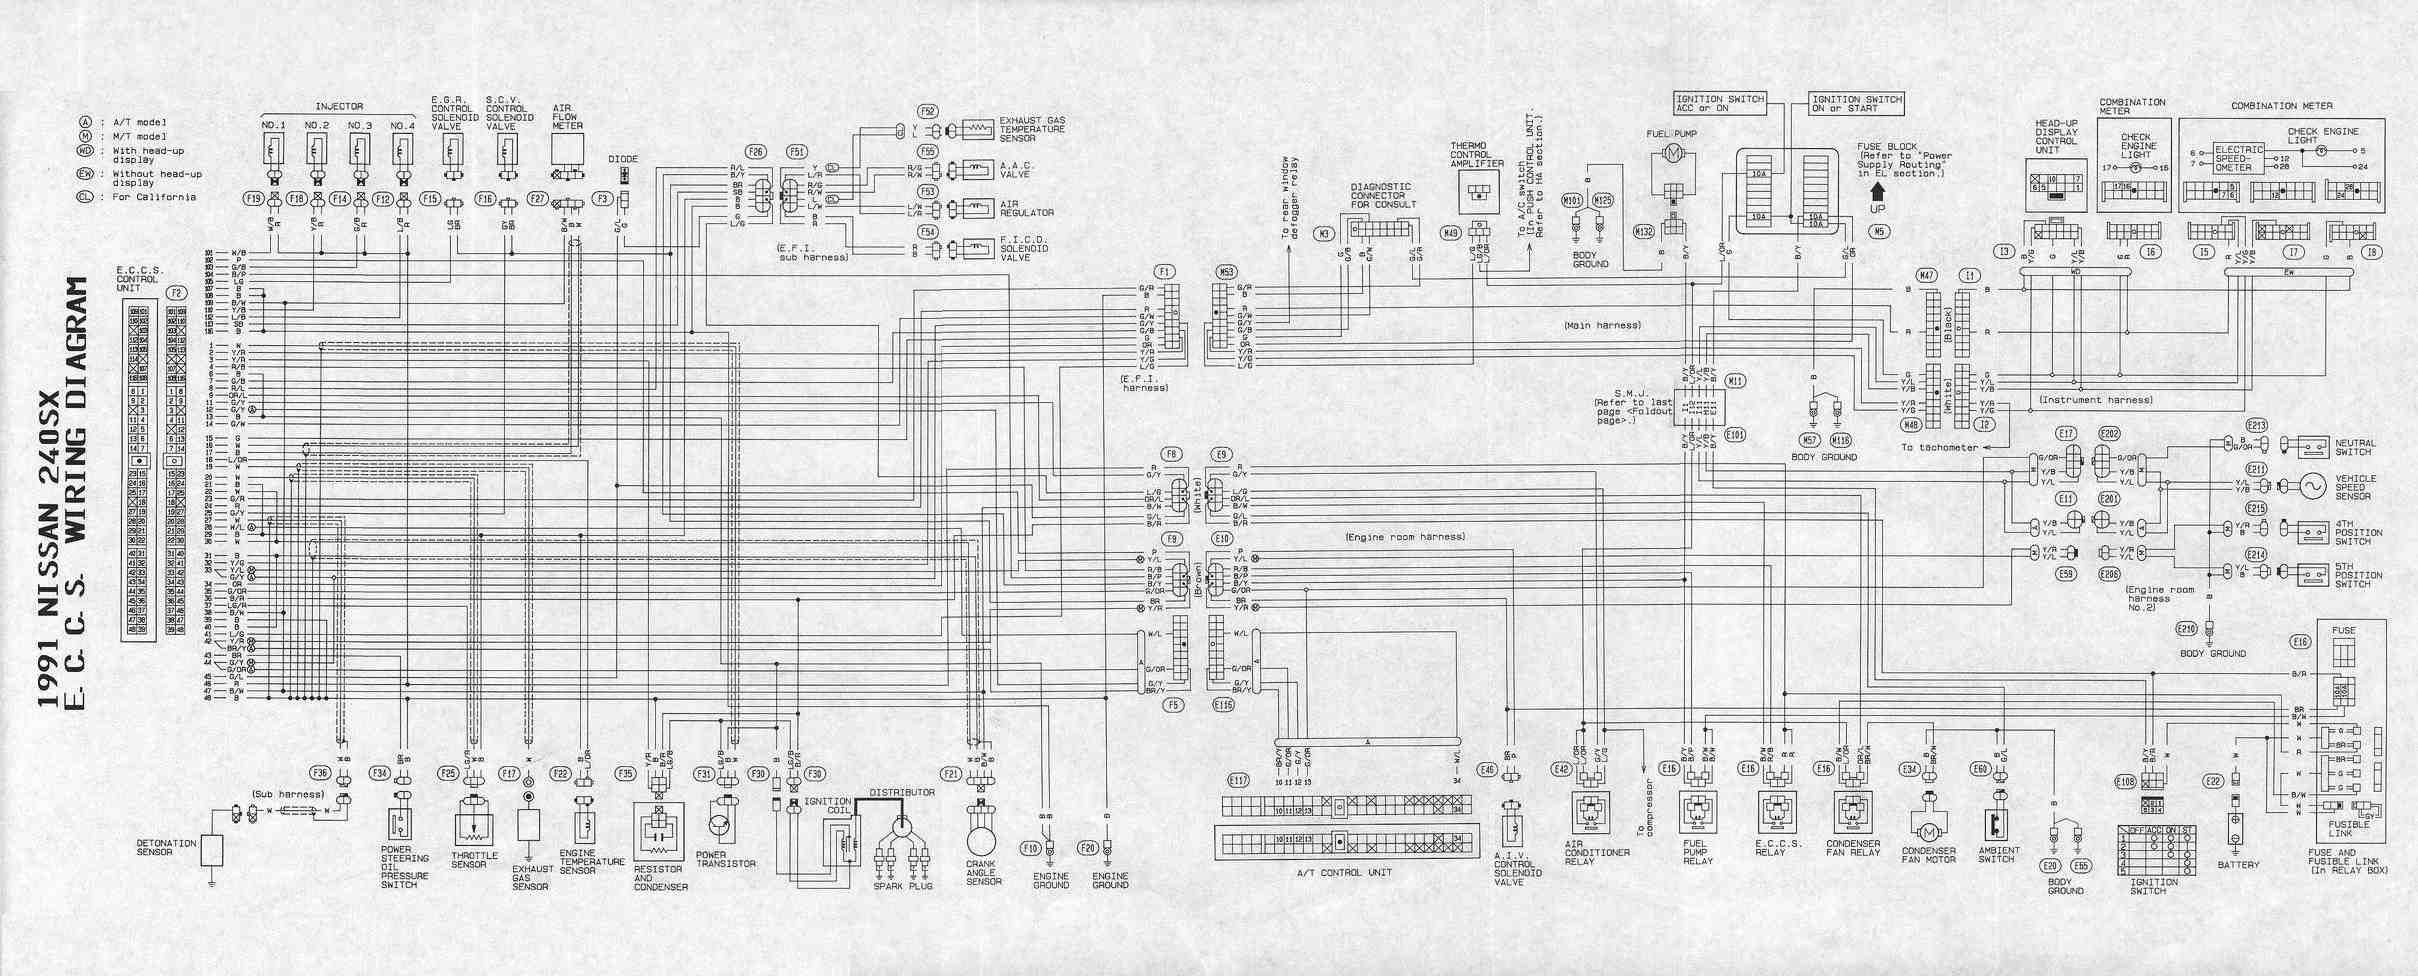 hight resolution of 1996 nissan pickup wiring diagram free download 20 16 ulrich temme